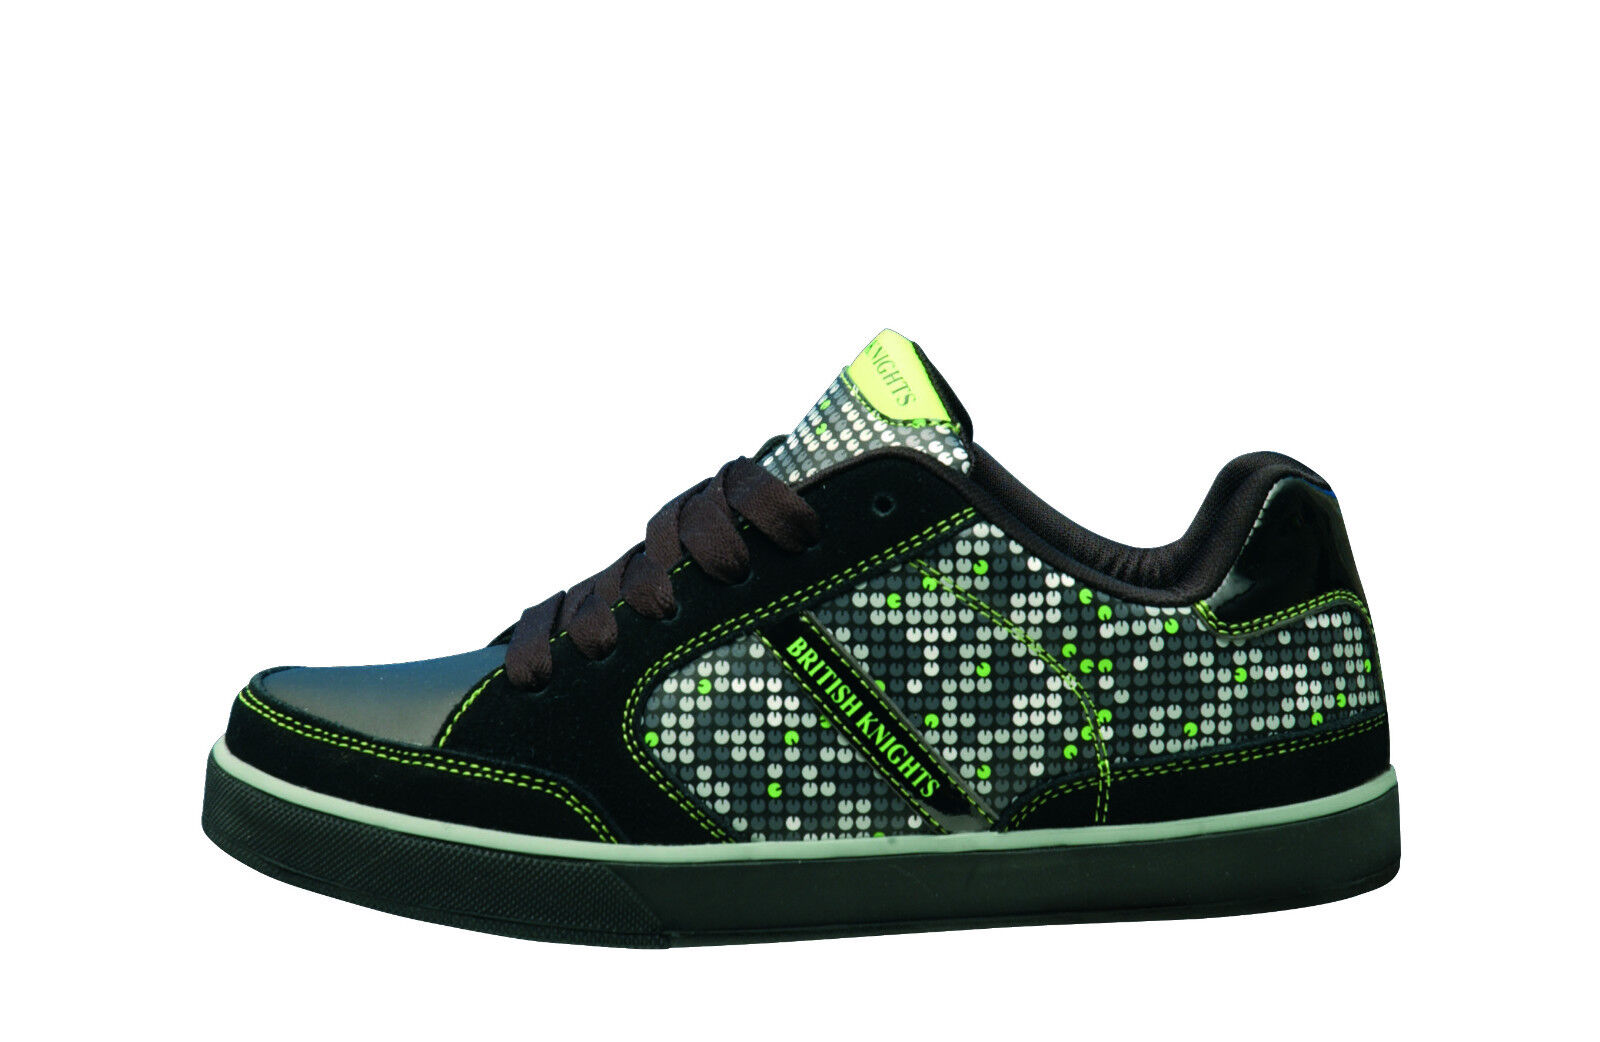 BK British Knights Halbschuhe Sneaker Black Green